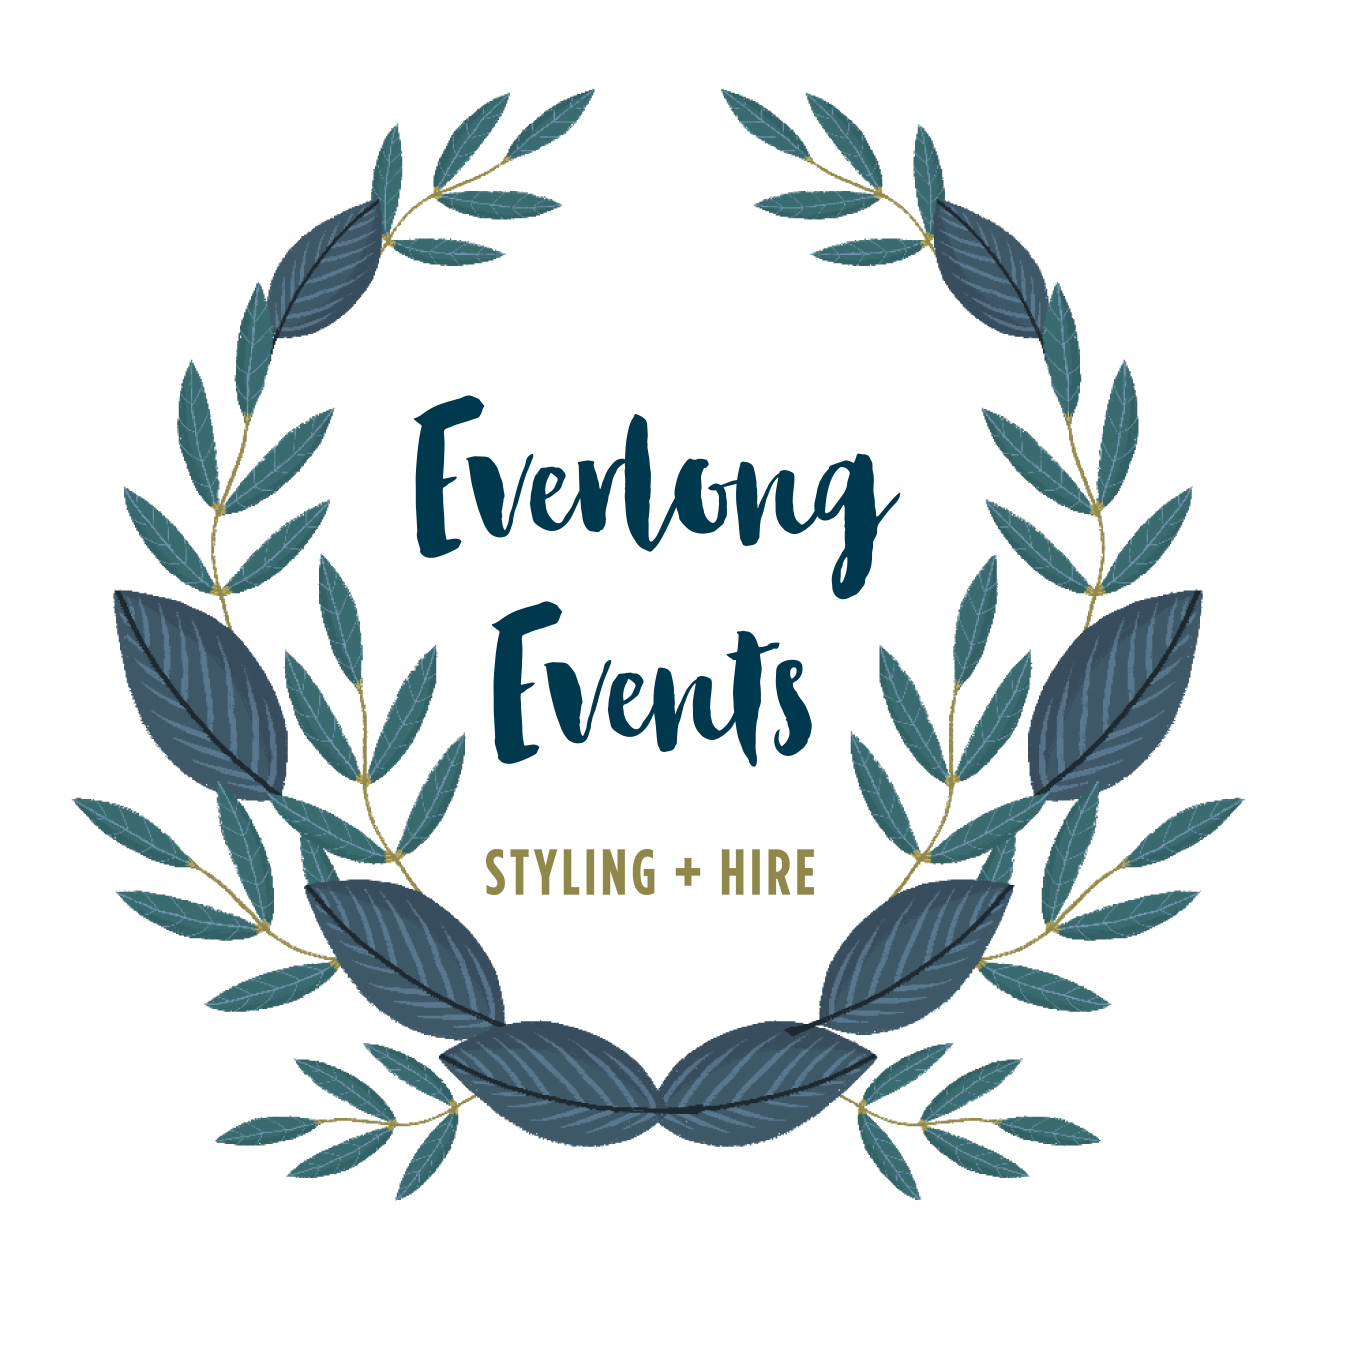 Everlong Events